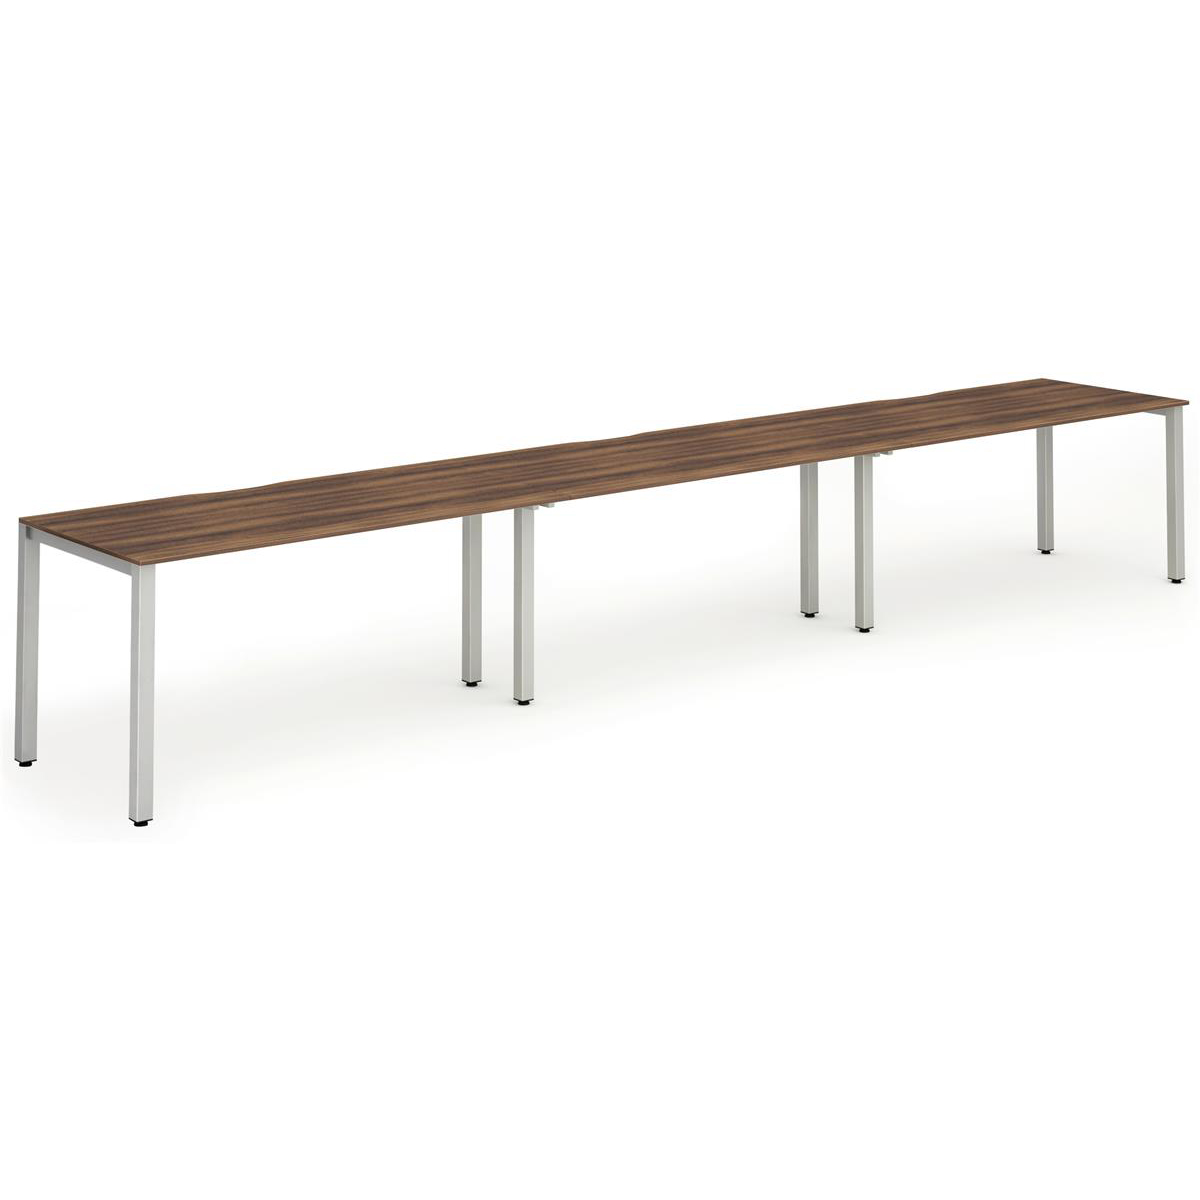 Trexus Bench Desk 3 Person Side to Side Configuration White Leg 4800x800mm Walnut Ref BE389